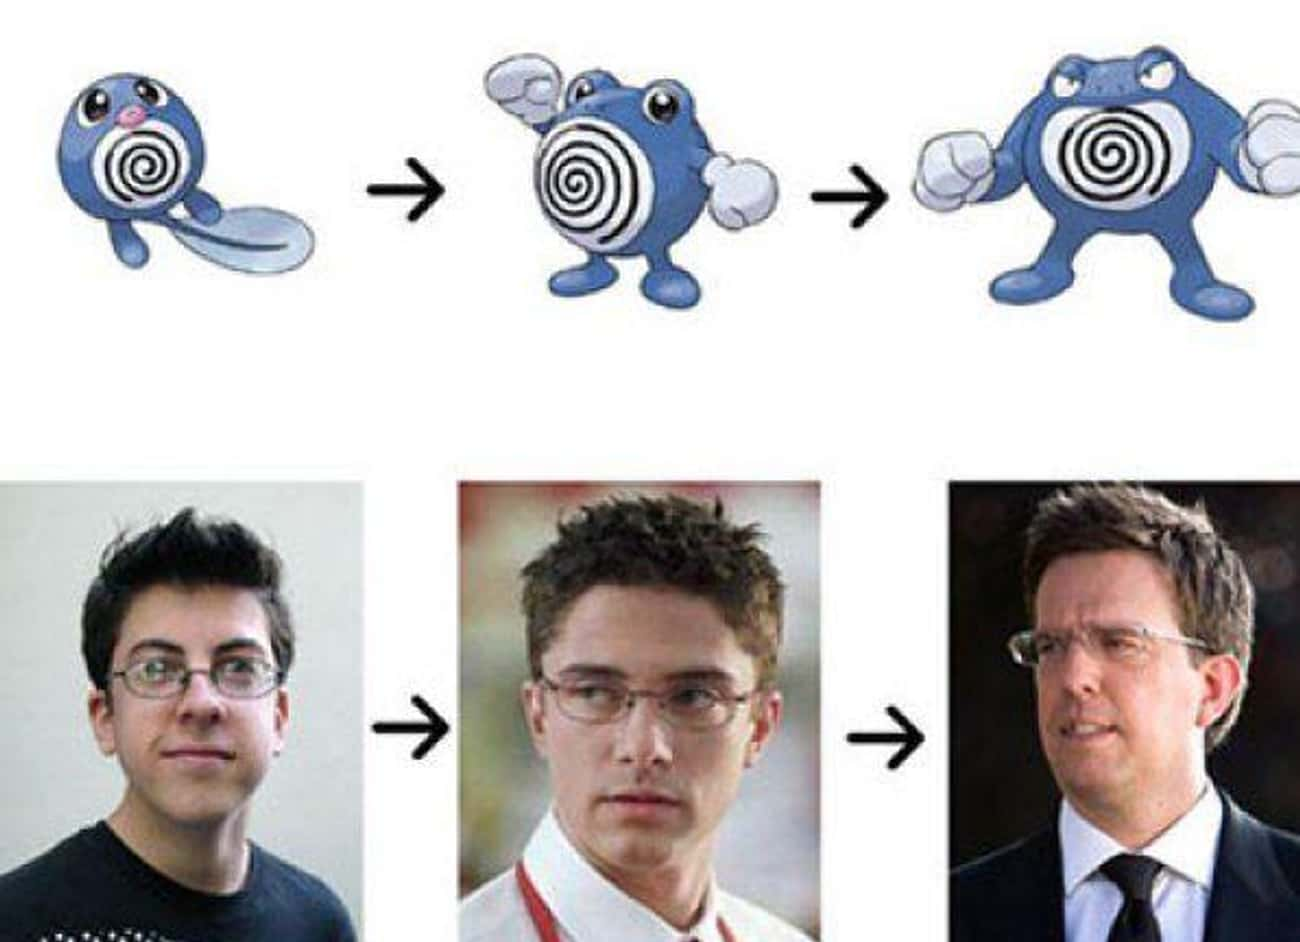 Ed Helms Is a Poliwrath? is listed (or ranked) 4 on the list 23 Hilarious Celebrity Pokemon Evolutions That Make Too Much Sense